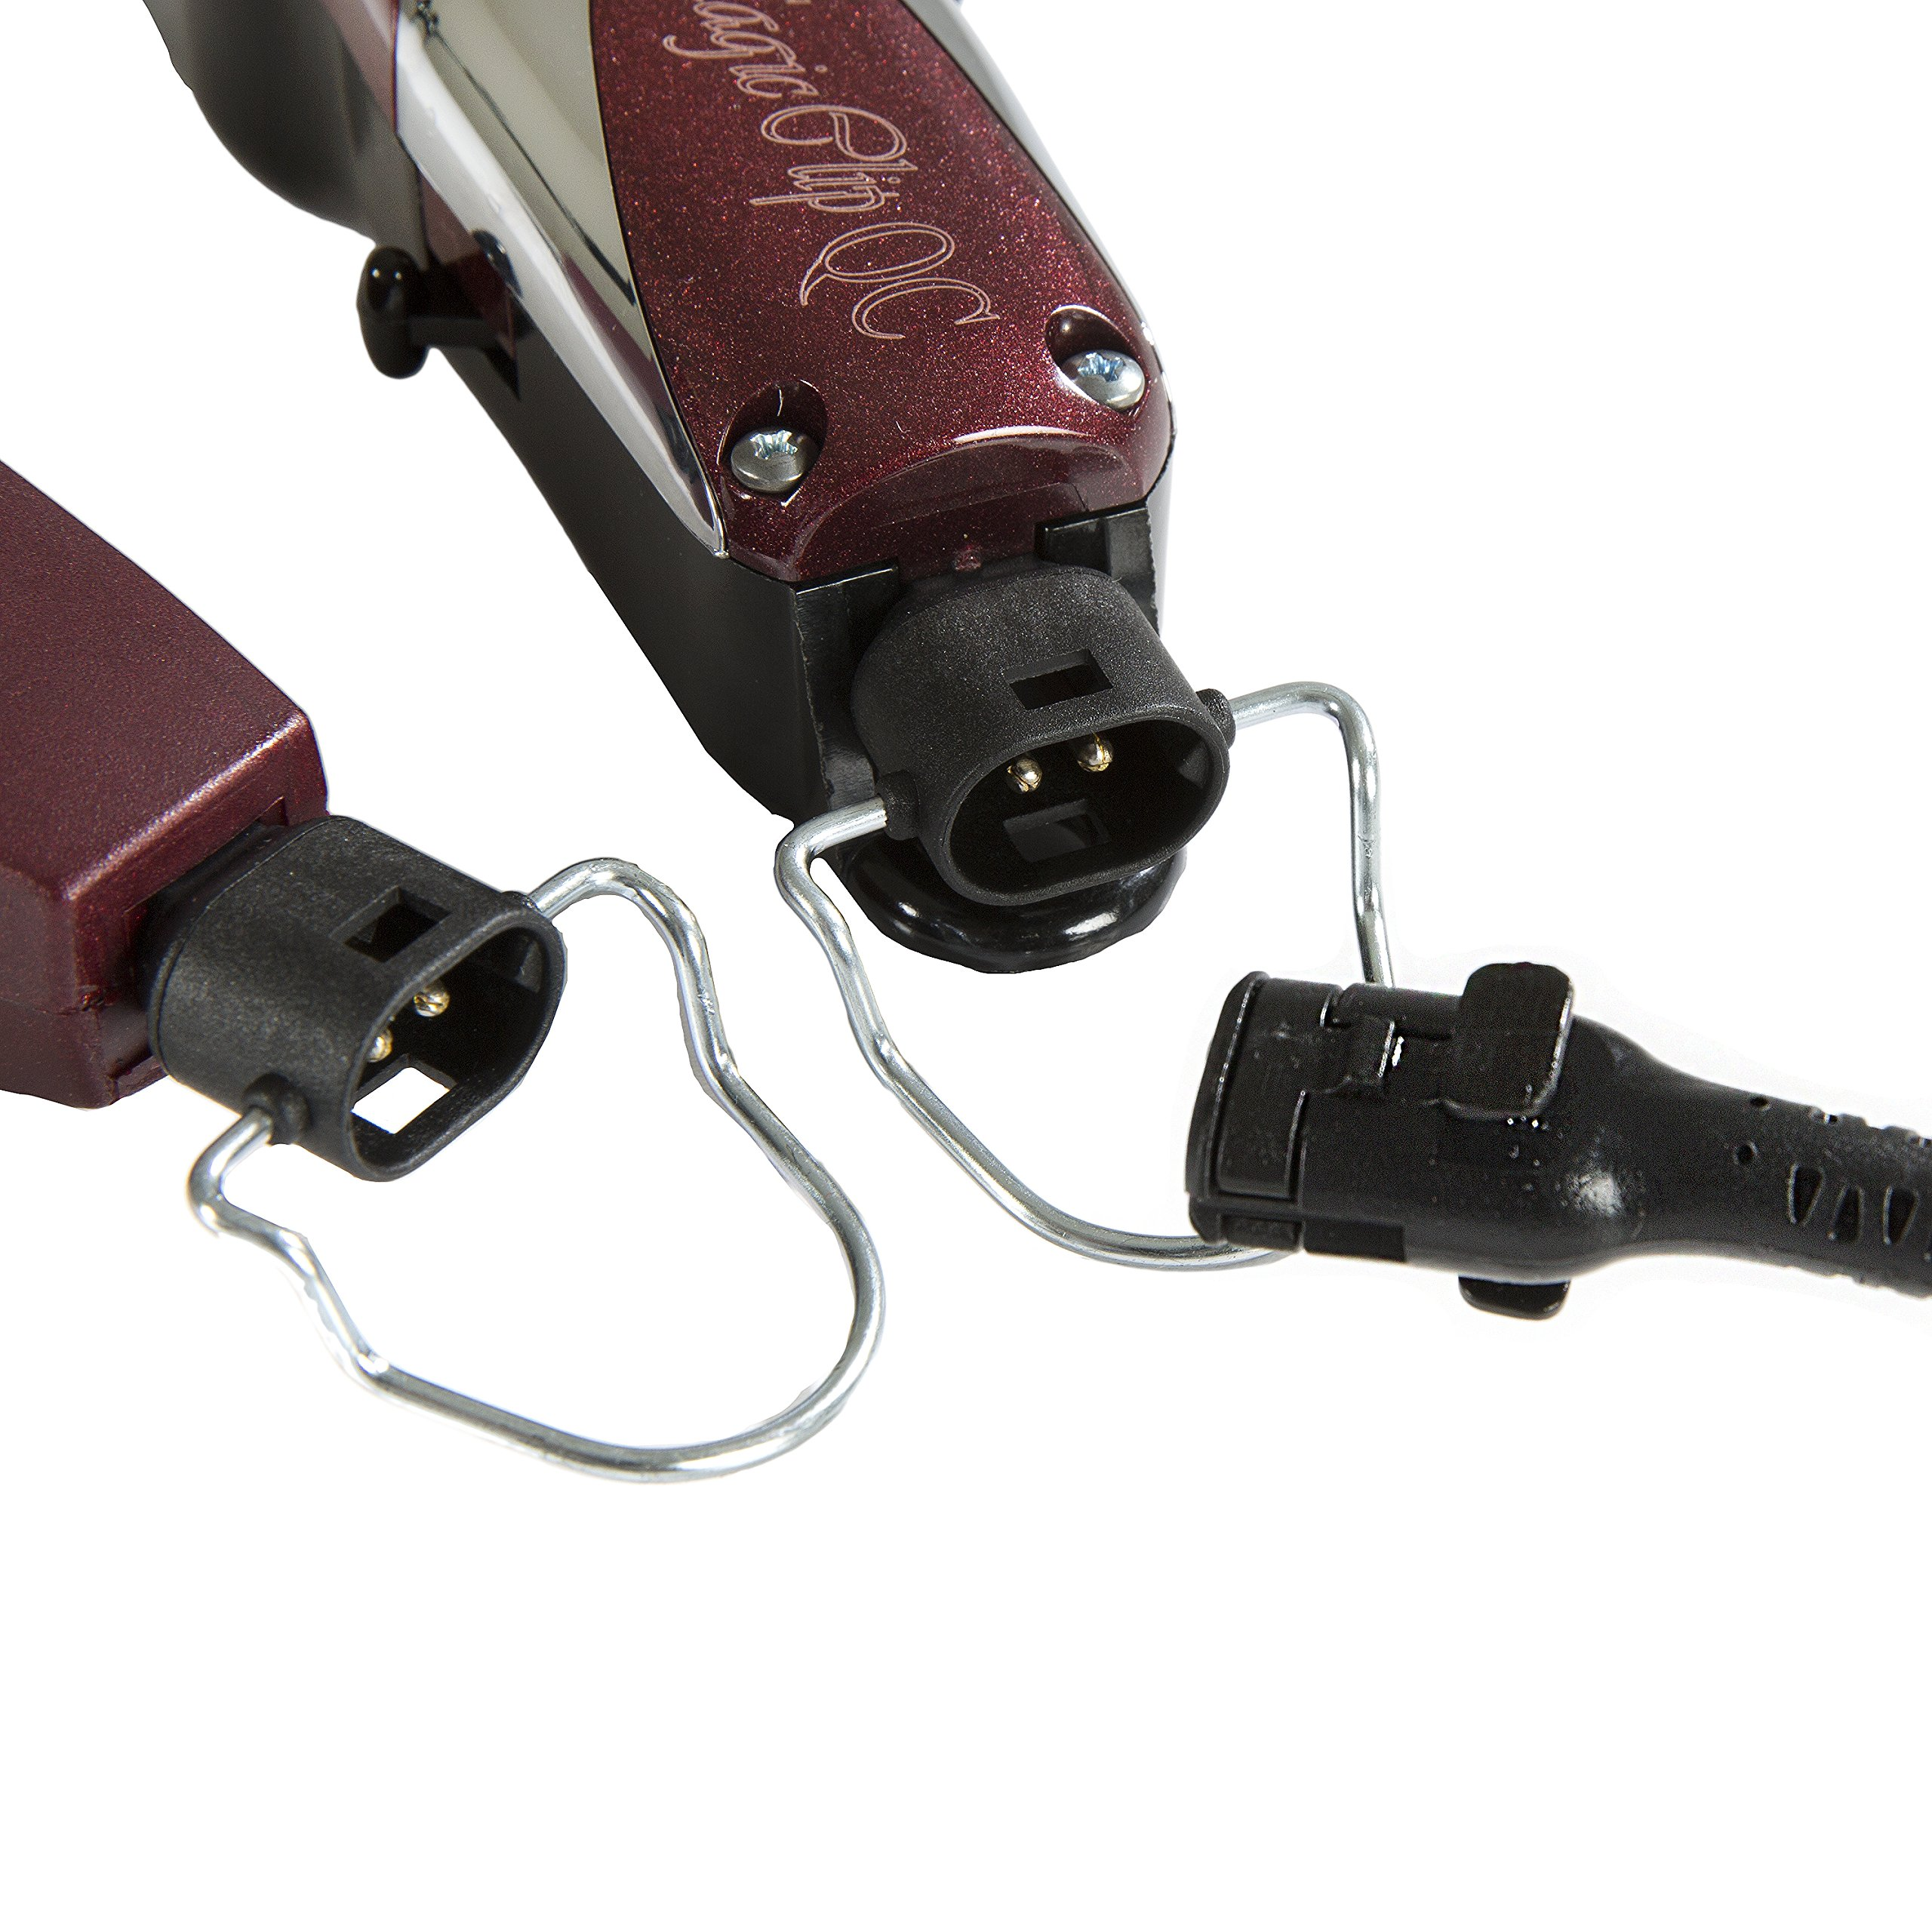 Wahl Professional 5-Star Unicord Combo #8242 – Reduce Your Cord Clutter! – Features the Magic Clip and Razor Edger – Great for Fading, Blending, and Edging by Wahl Professional (Image #9)